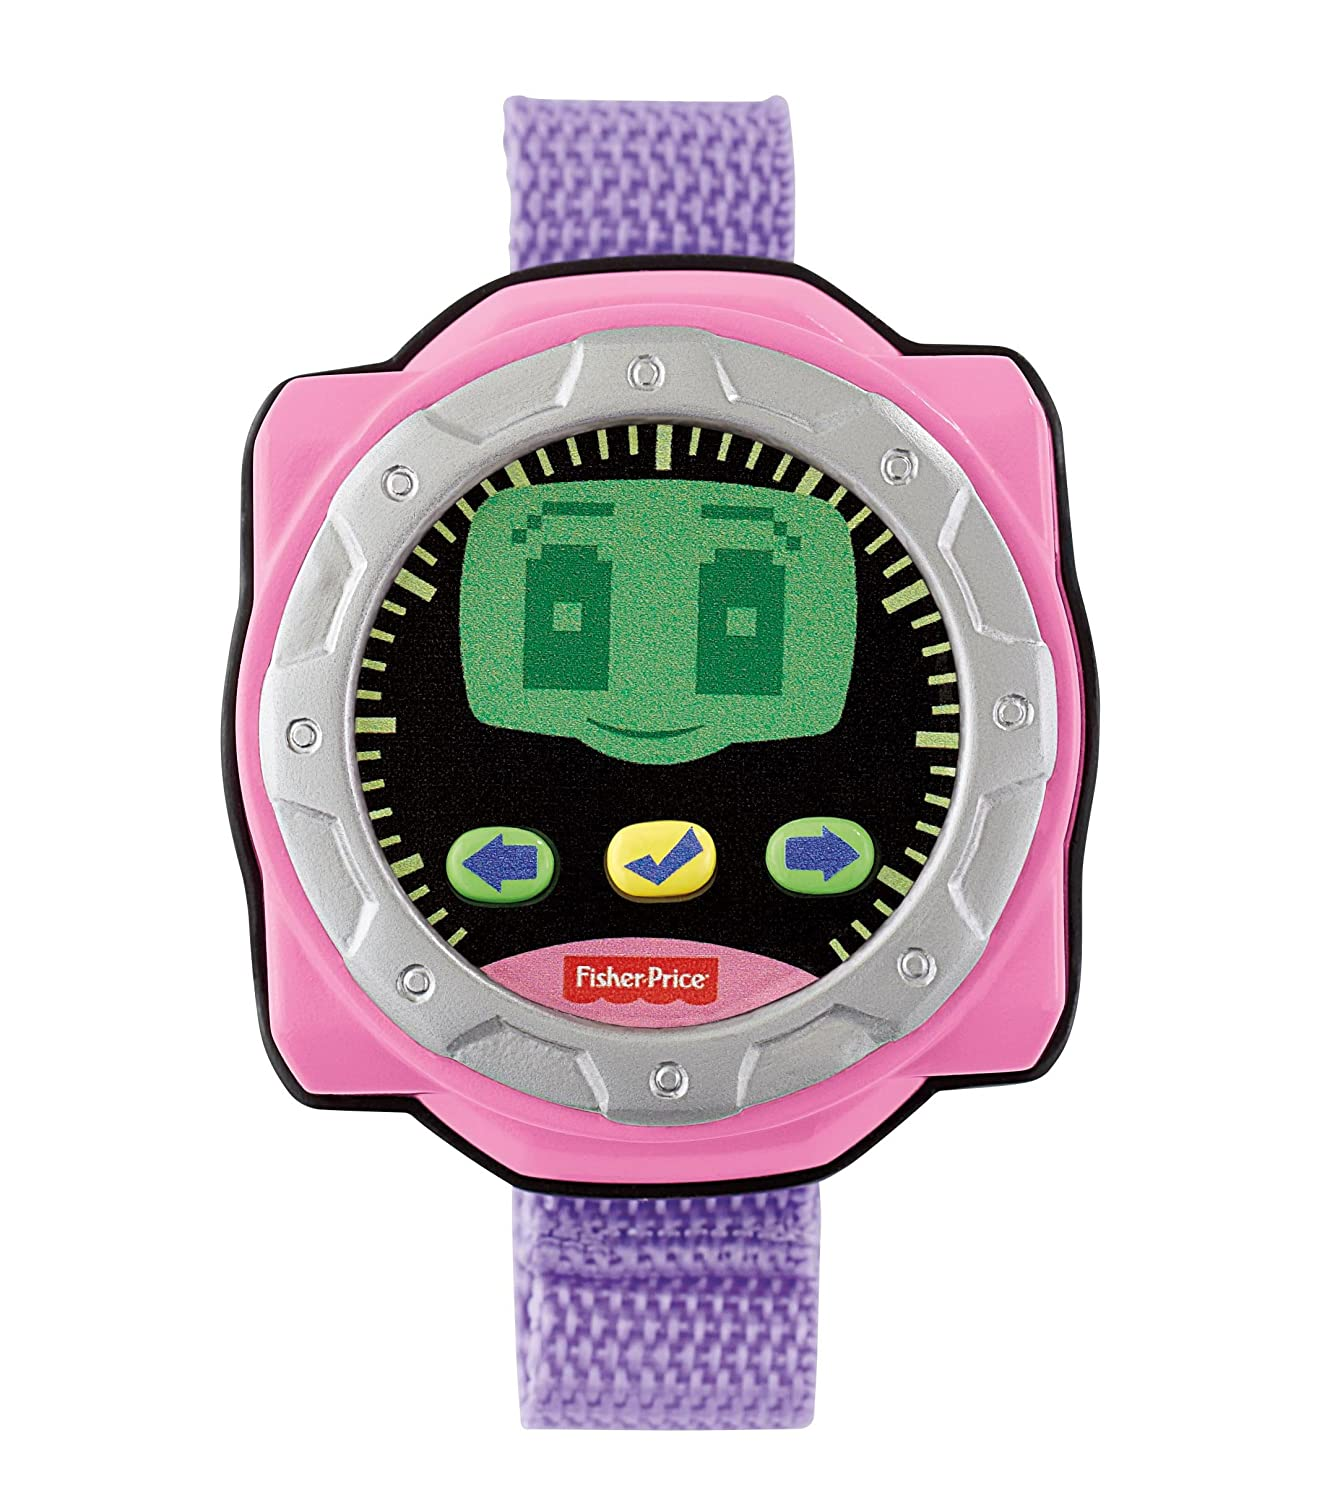 Amazon.com: Fisher-Price Smart Watch for Girls: Toys & Games